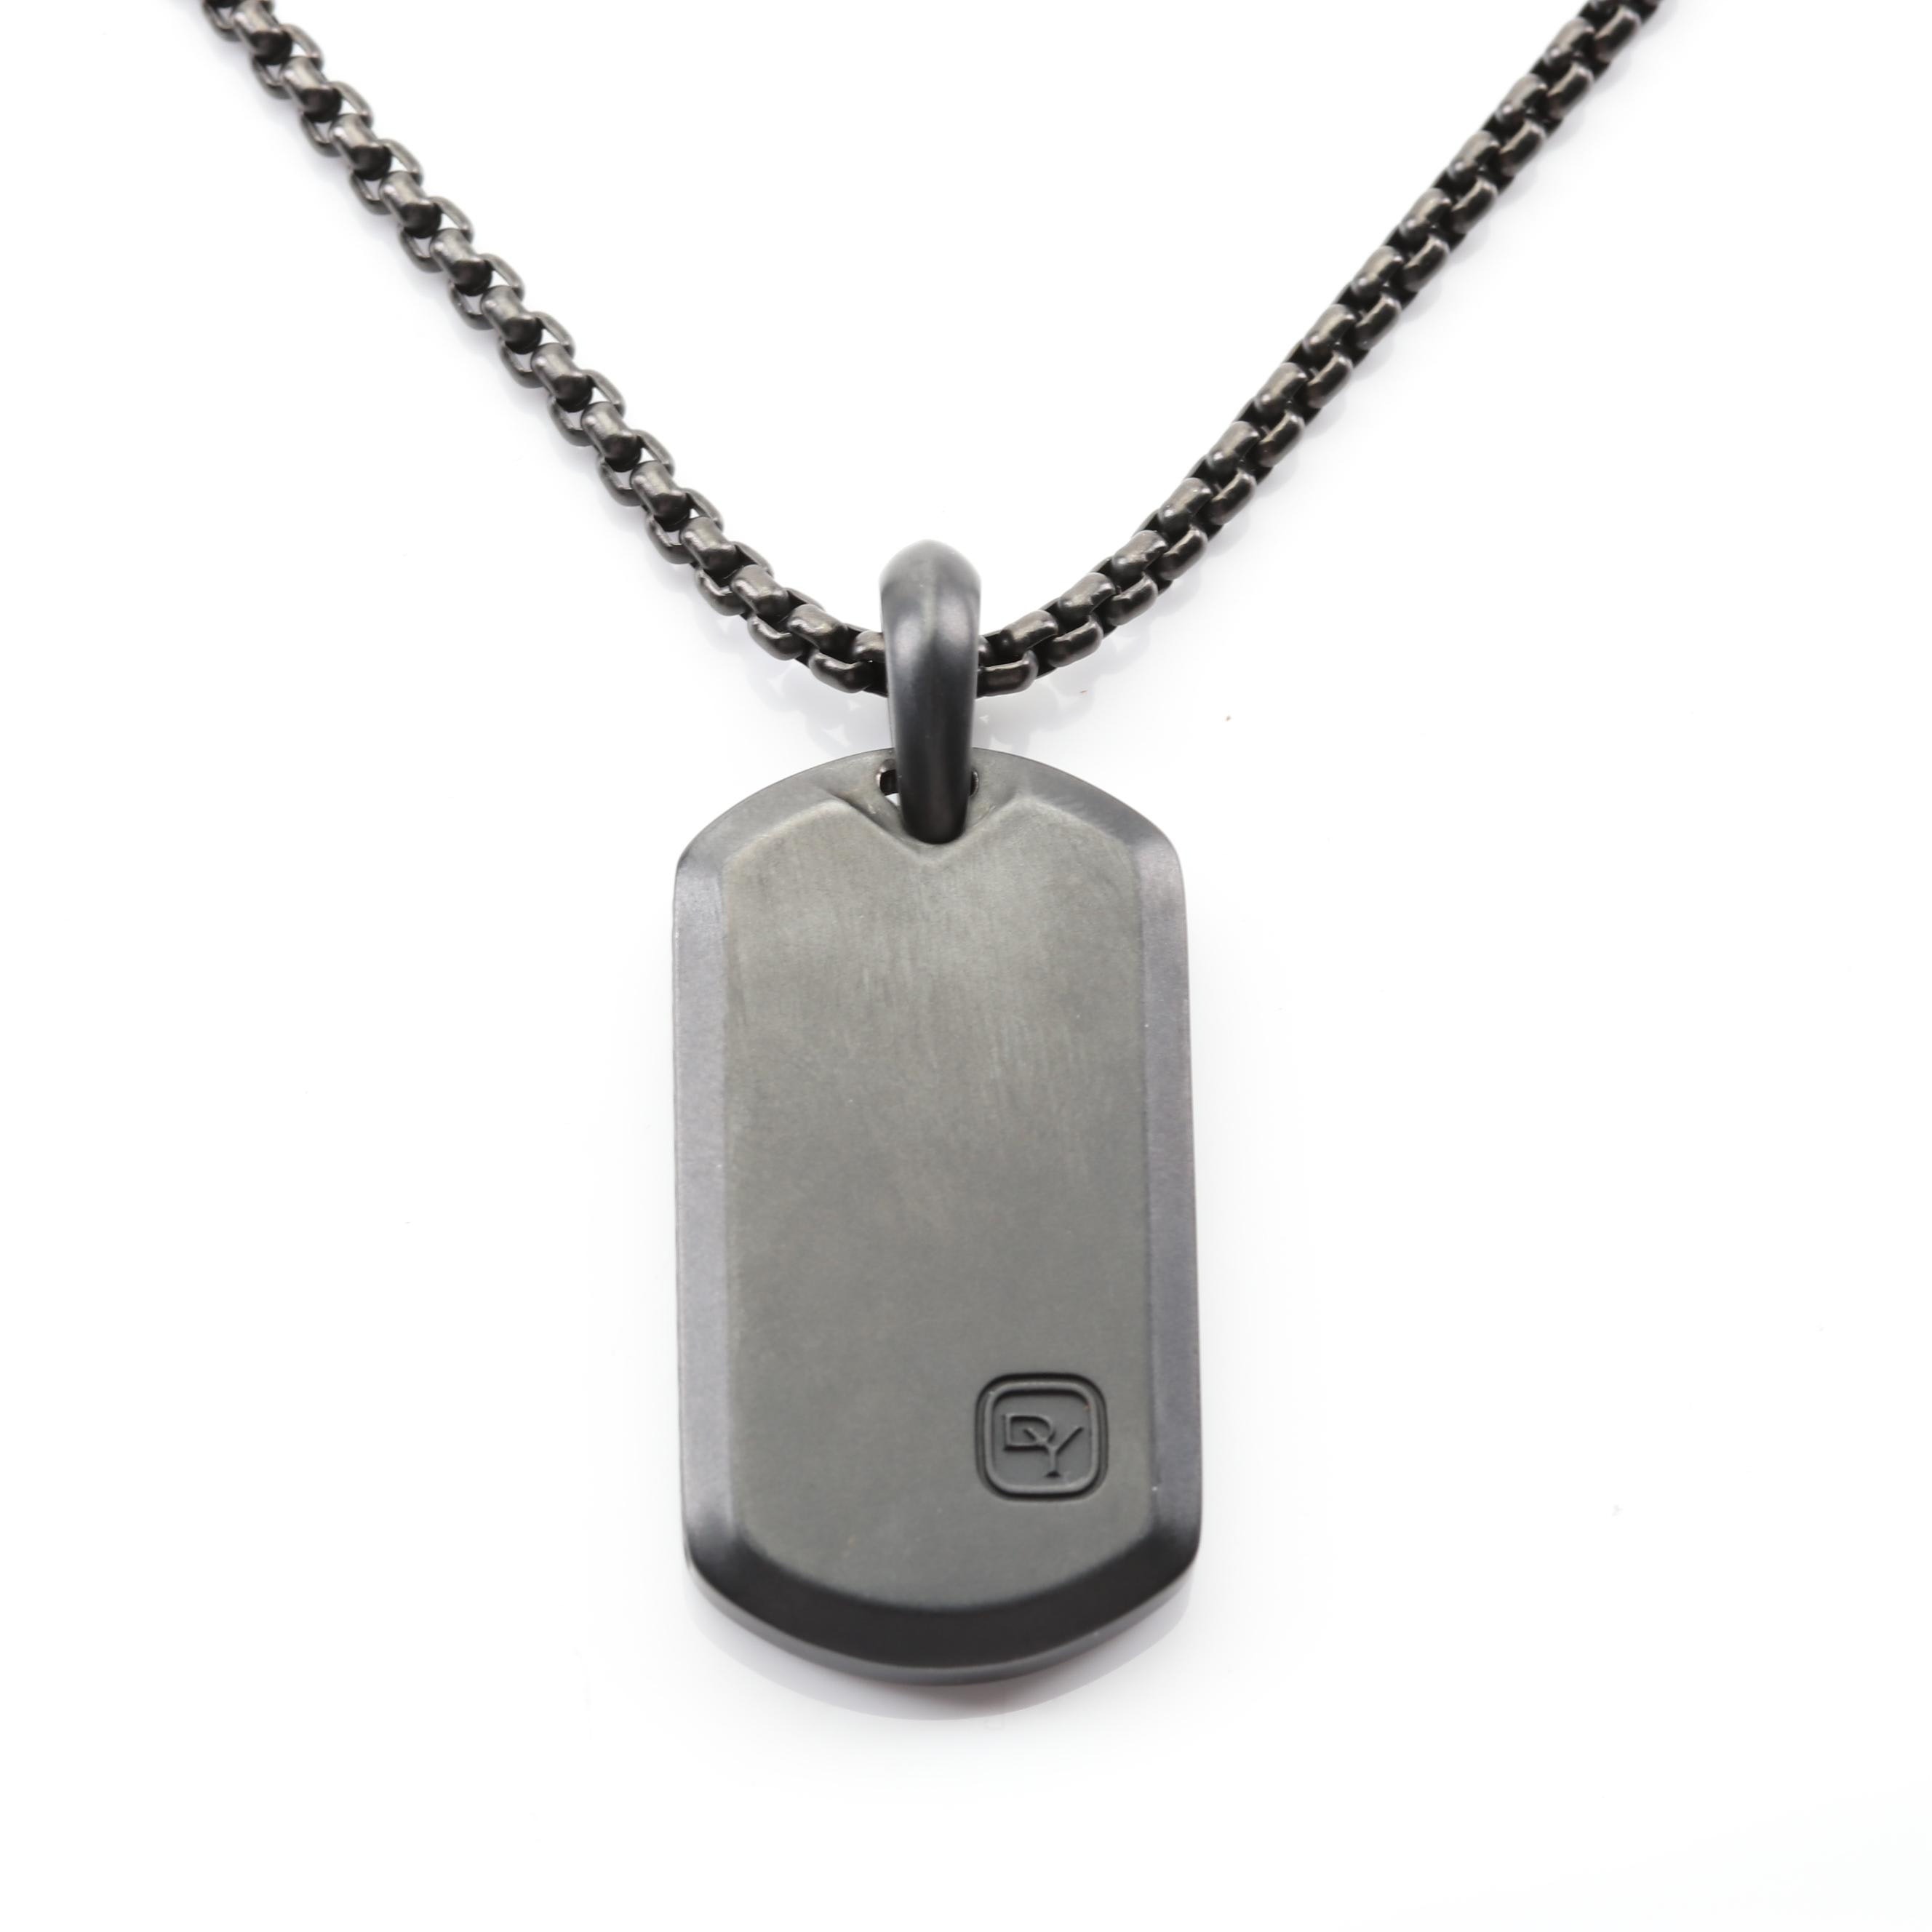 David Yurman Stainless Steel Dog Tag Pendant